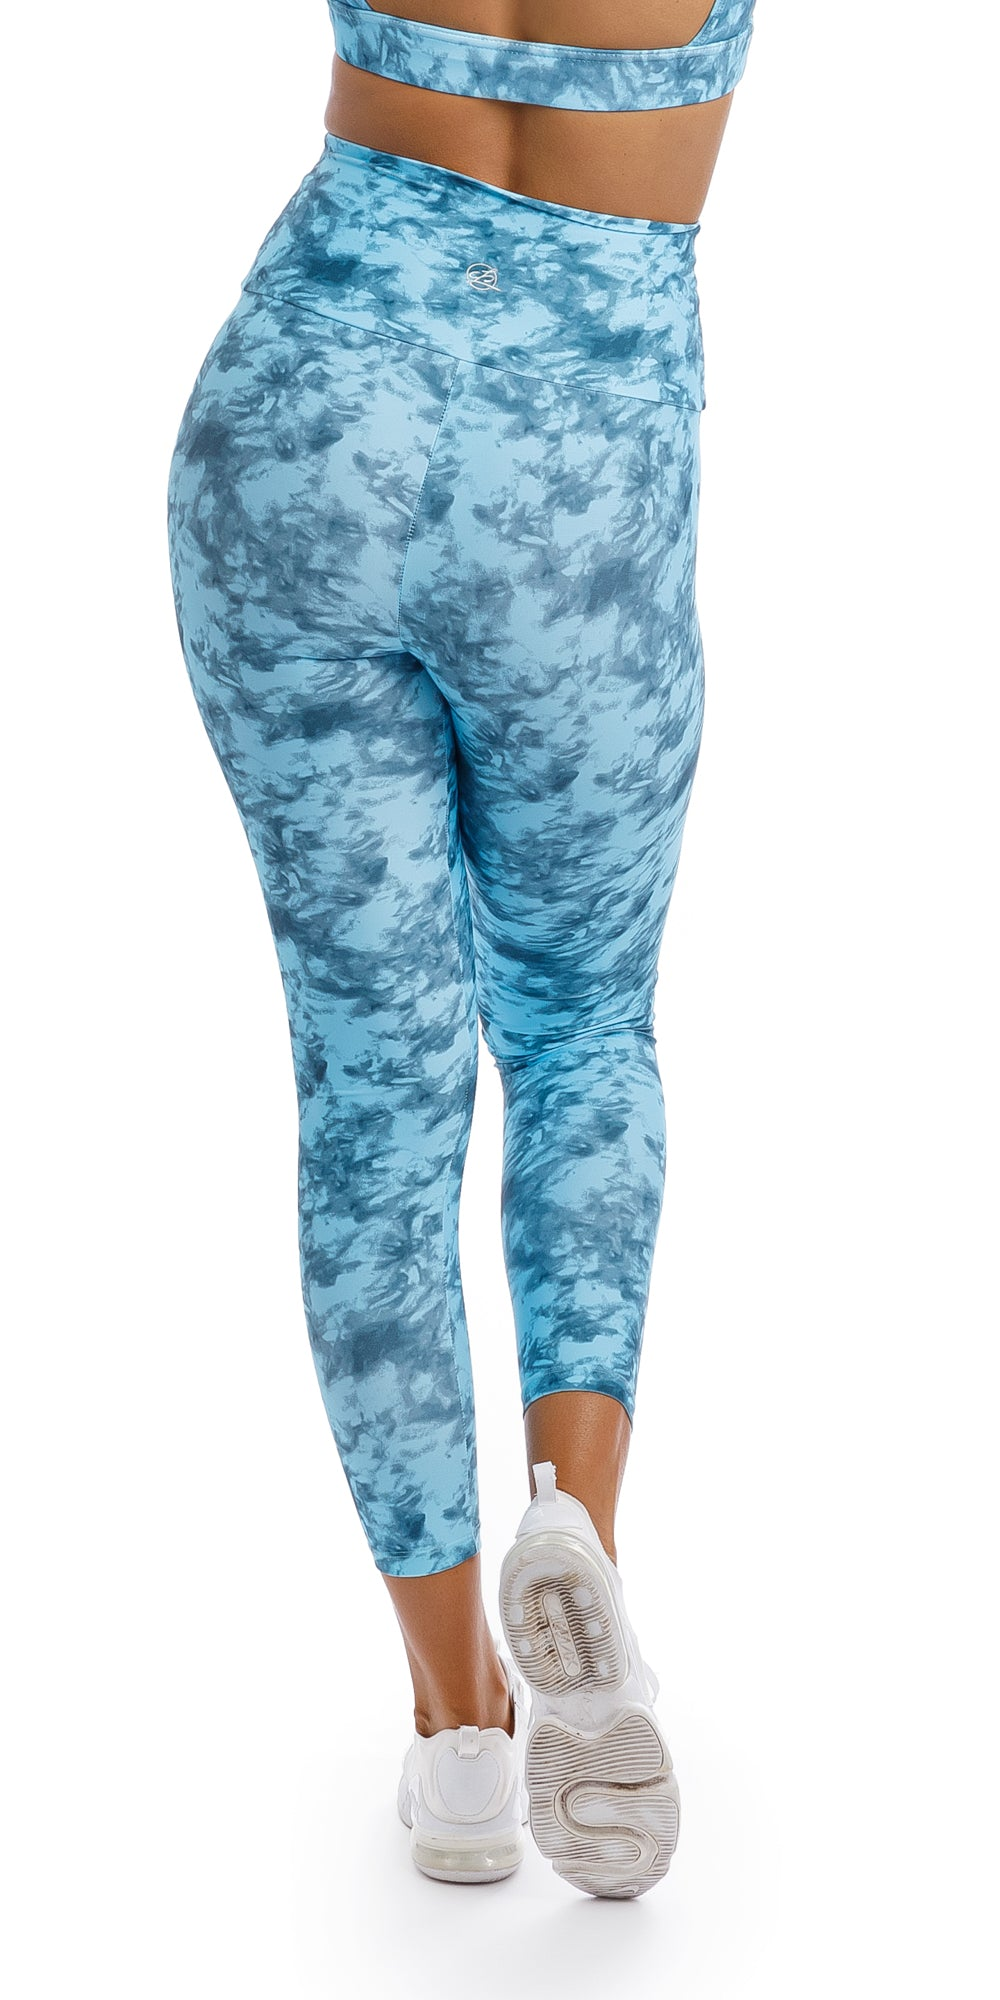 Girl wearing blue tie dye blue crush print ultra high waist 7/8 leggings & matching rhythm bra